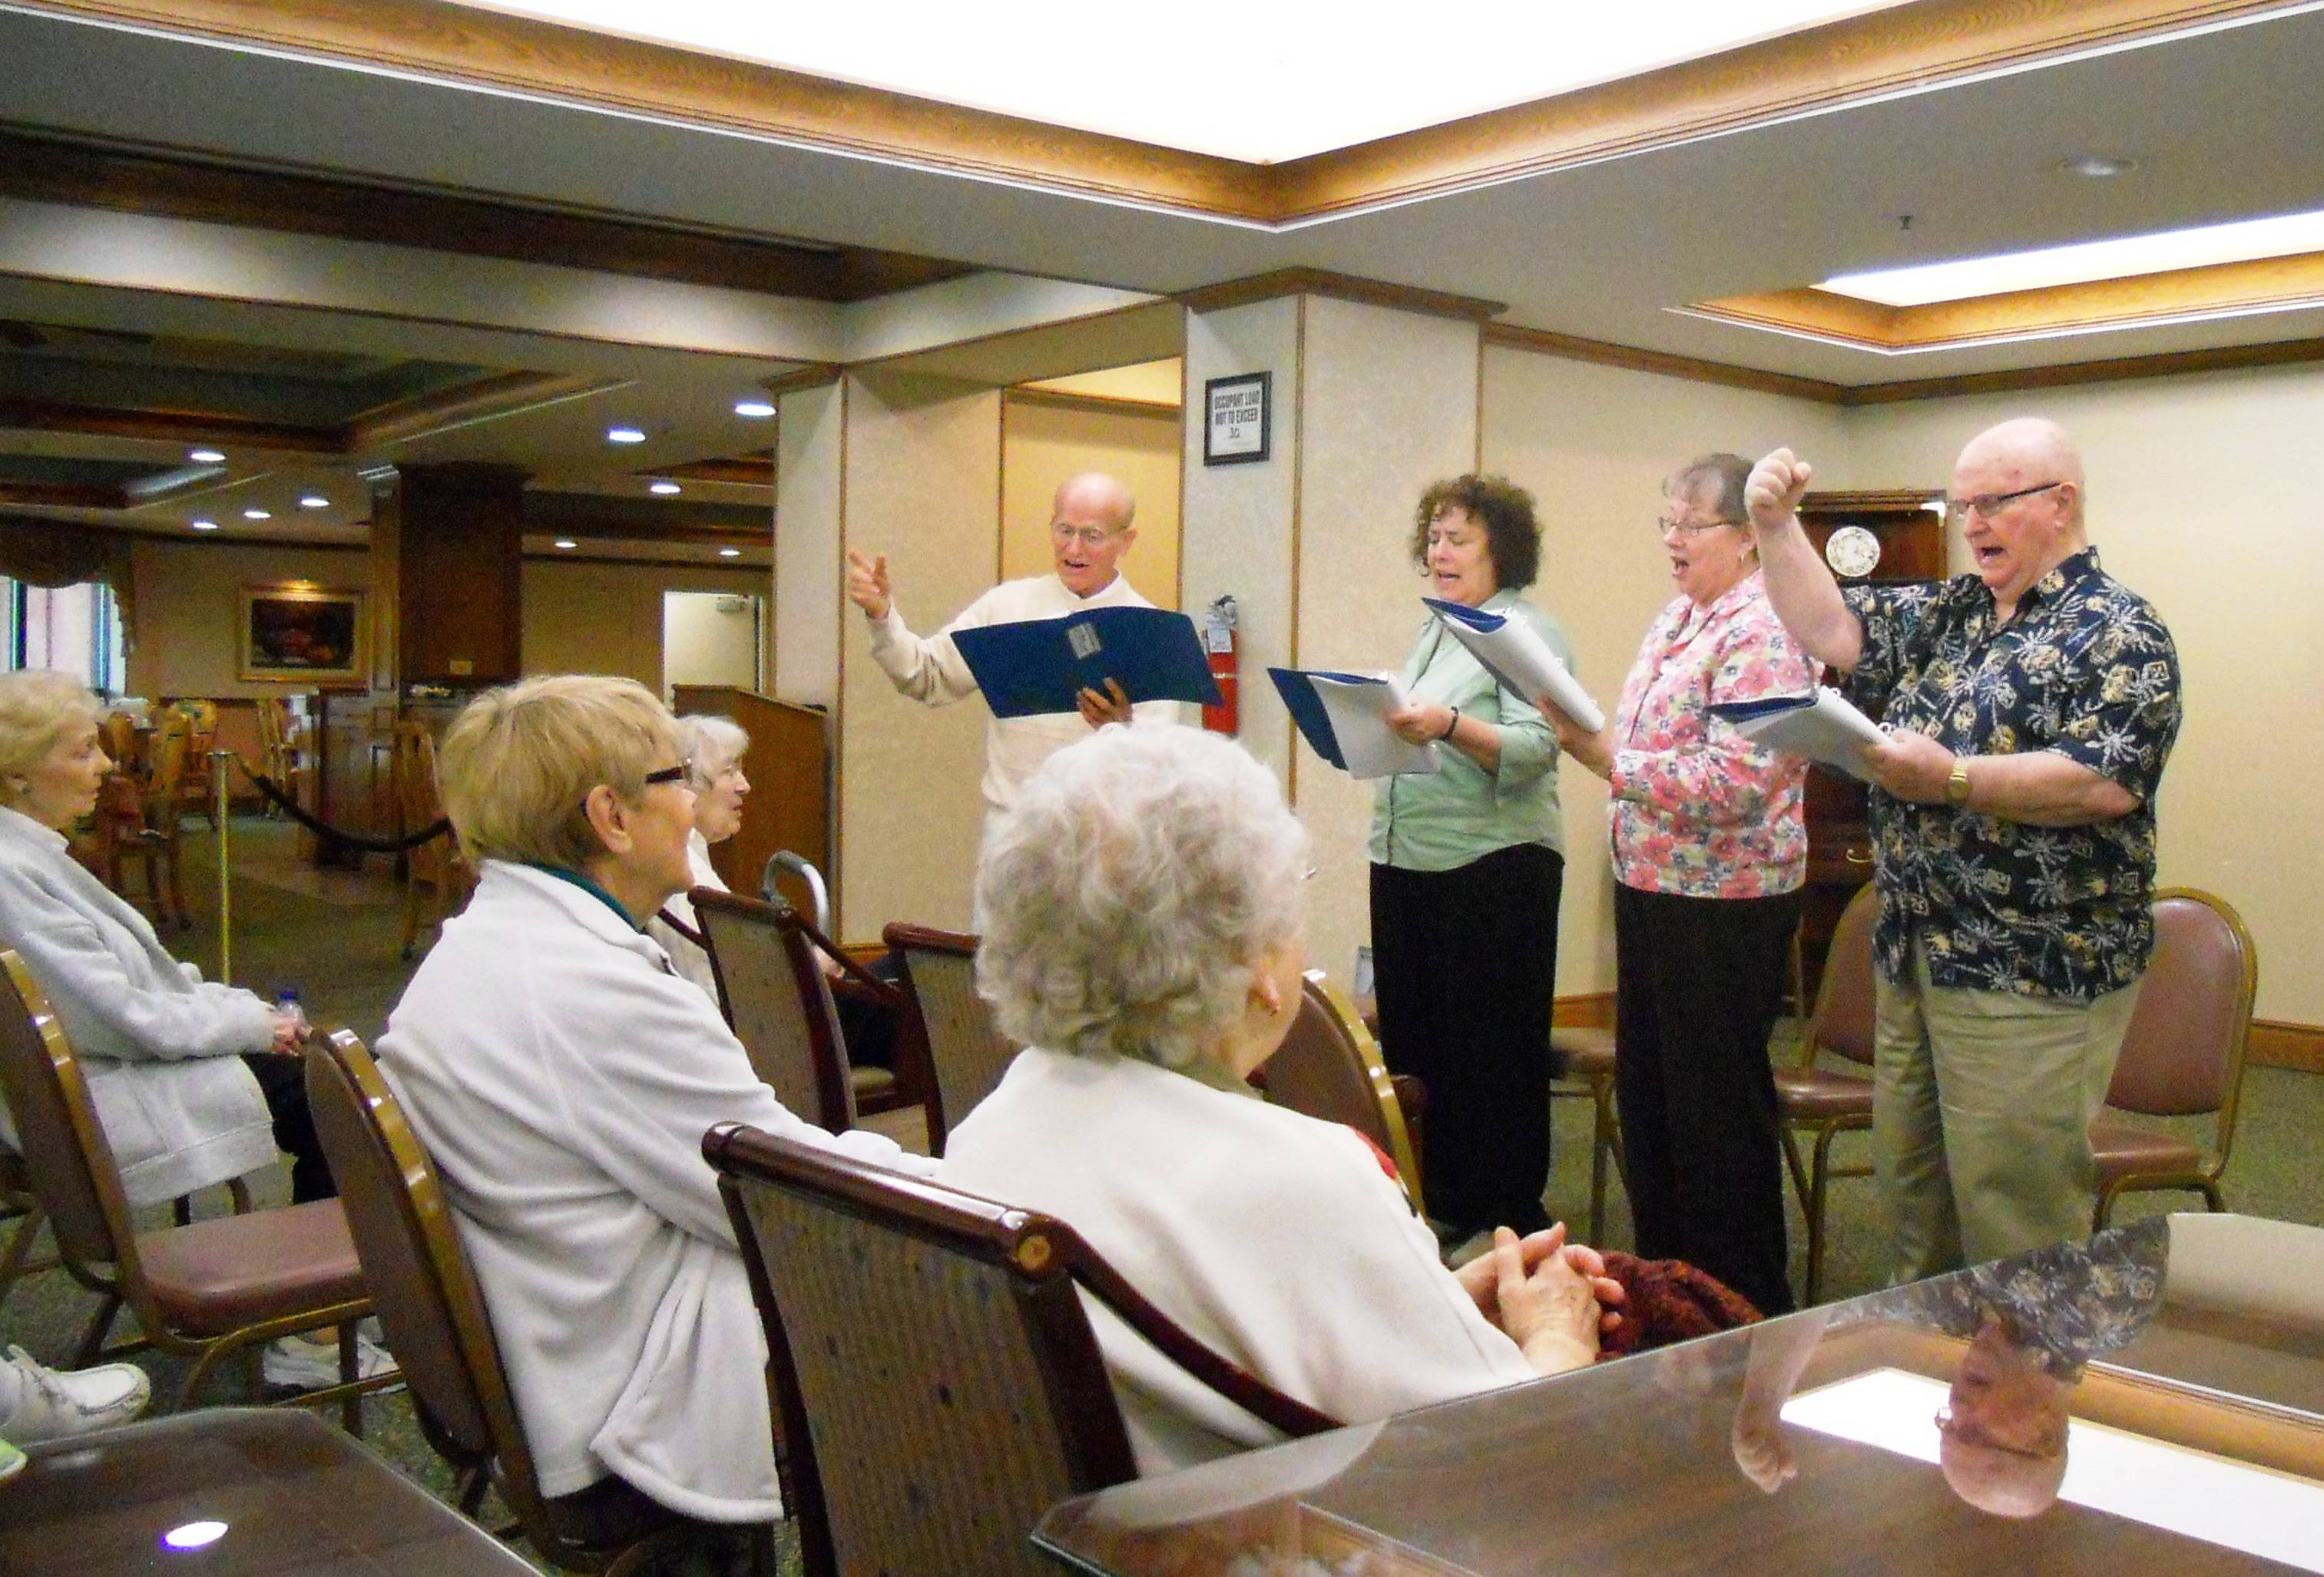 Performers with the Readers' Theatre Group, from left, Joe Schrantz, Carolyn Wiss-Miller, Mary Tomaso and Harry Schaudt, perform for seniors.